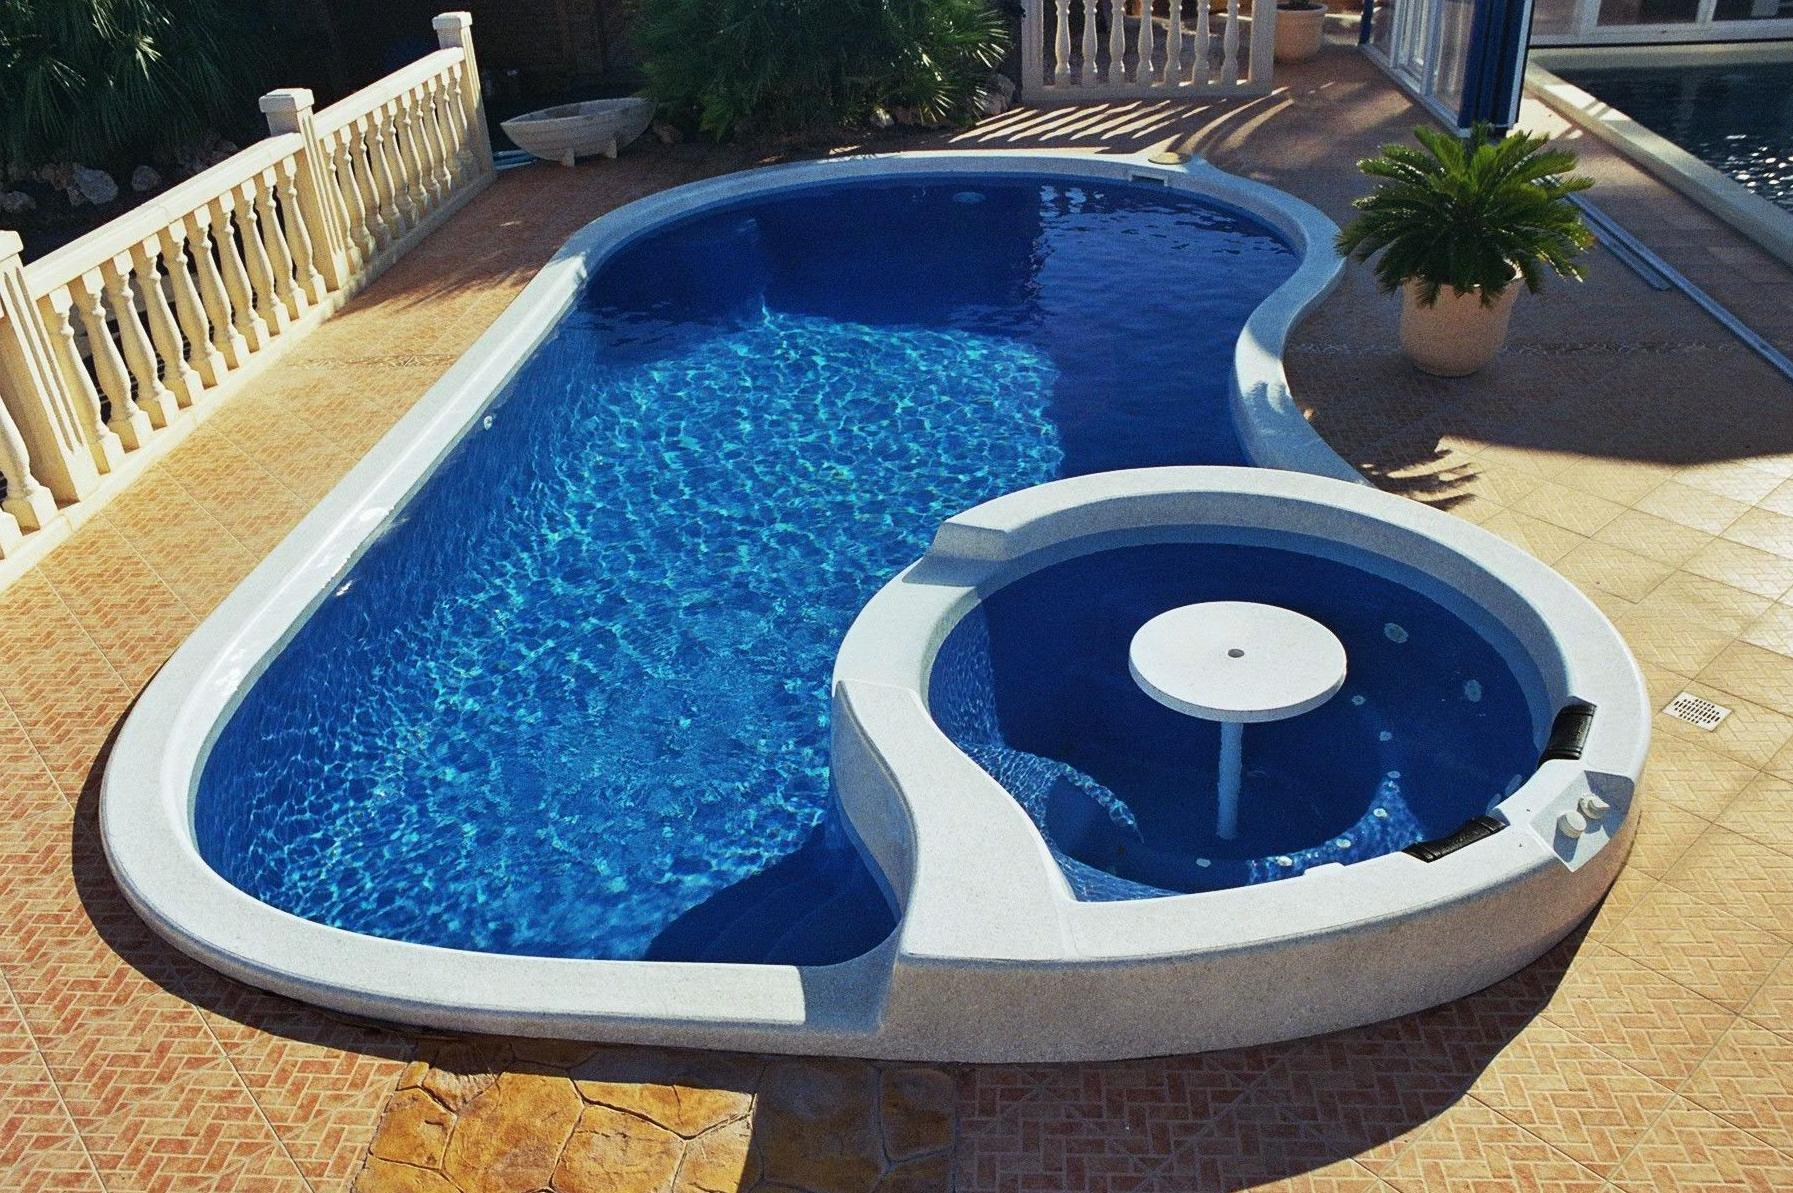 Piscinas freedom pool piscinas y accesorios de ardigral for Escaleras piscina para personas mayores